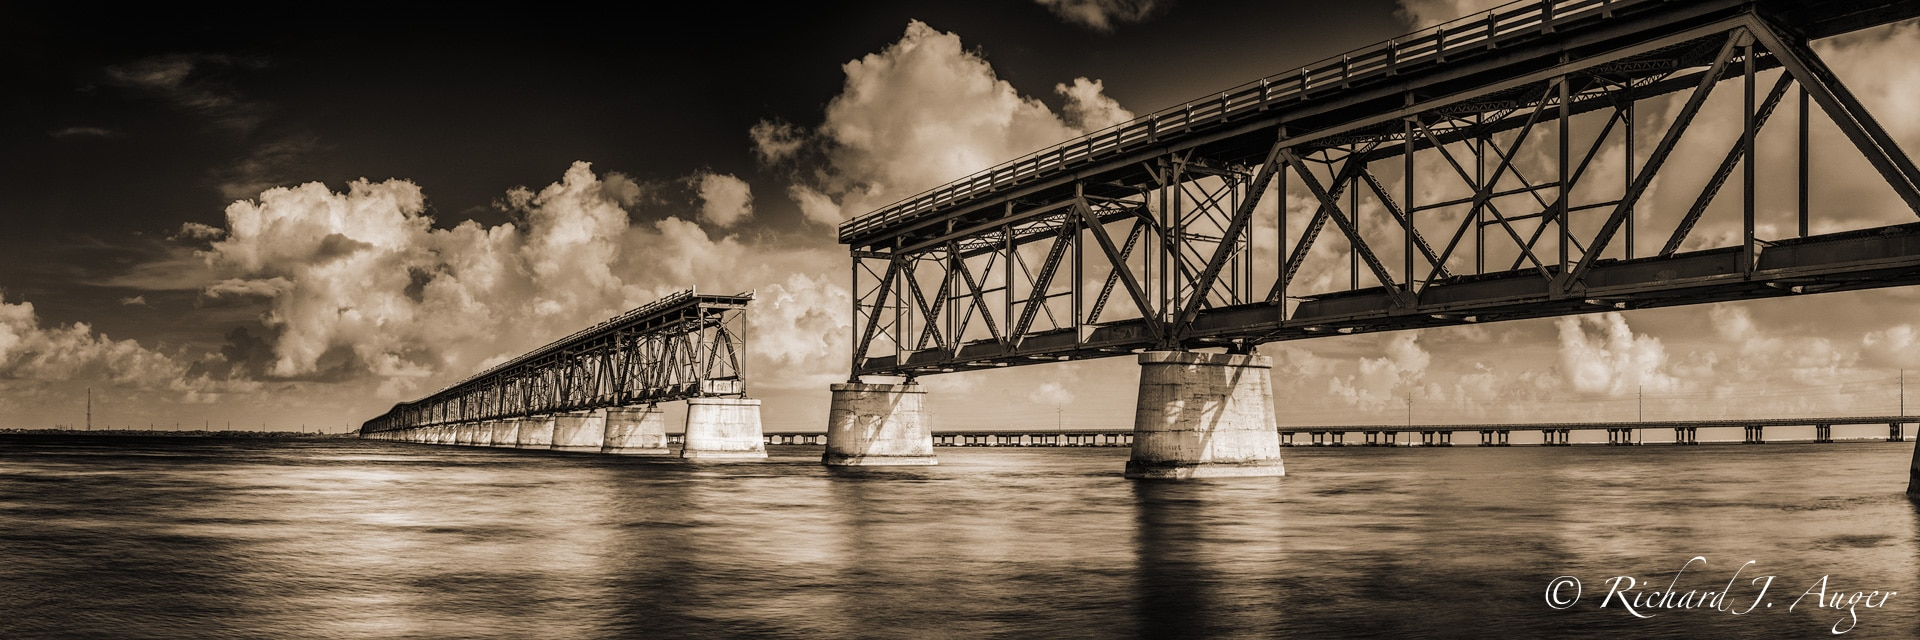 Bahia Honda Bridge, Bahia Honda State Park, Florida Keys, Historic, Water, Ocean, Sepia, Landscape, photographer, photograph, sepia tone, black and white, panorama